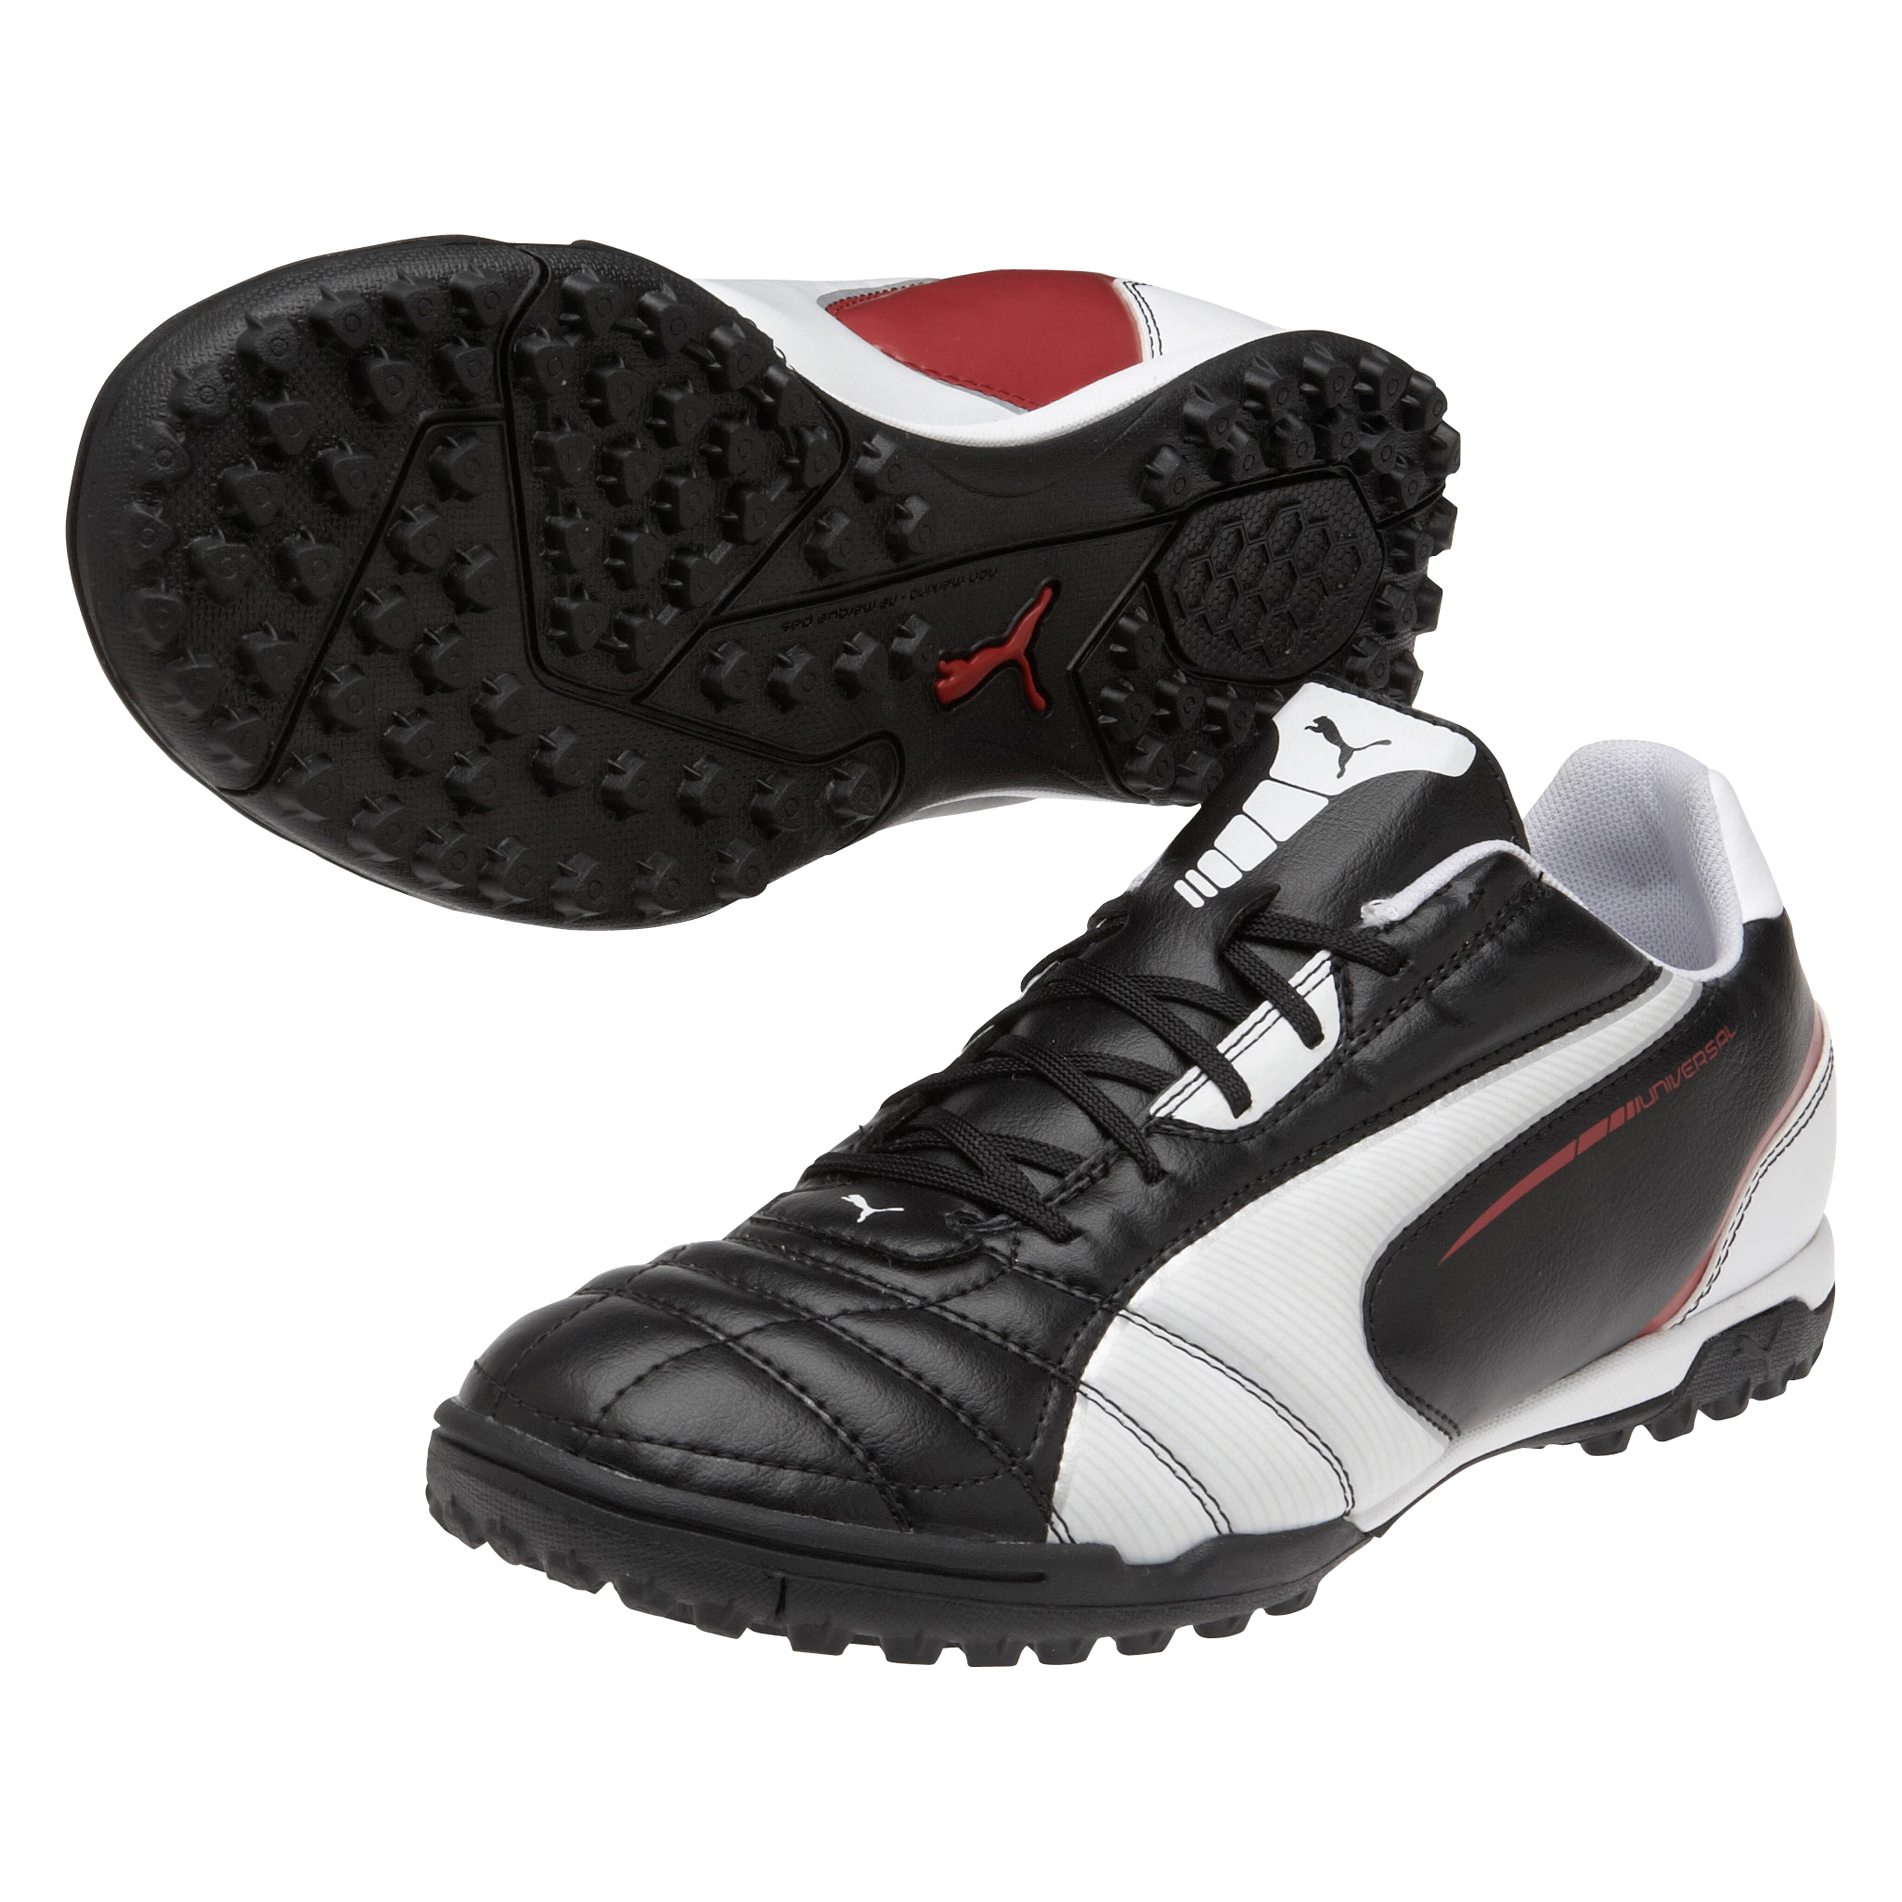 Puma Universal Astroturf Trainers - Black/White/Ribbon Red